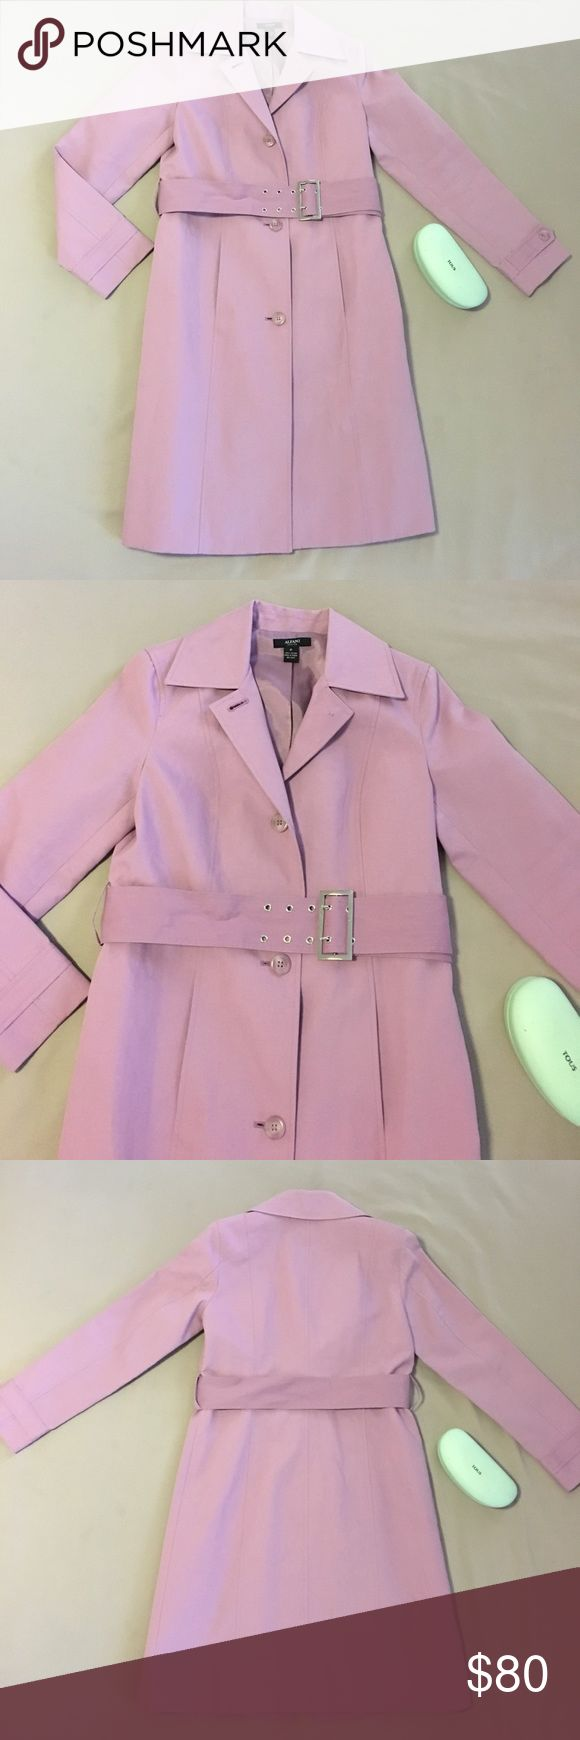 """Alfani Trench Coat Simply Stunning Alfani Petite trench coat. 100% cotton, fully lined. Chrome buckle. EUC. Pics are true to color. 36"""" long from shoulder-top and 18"""" across armpits. 👛🌂🎀👛🌂 Alfani Jackets & Coats Trench Coats"""